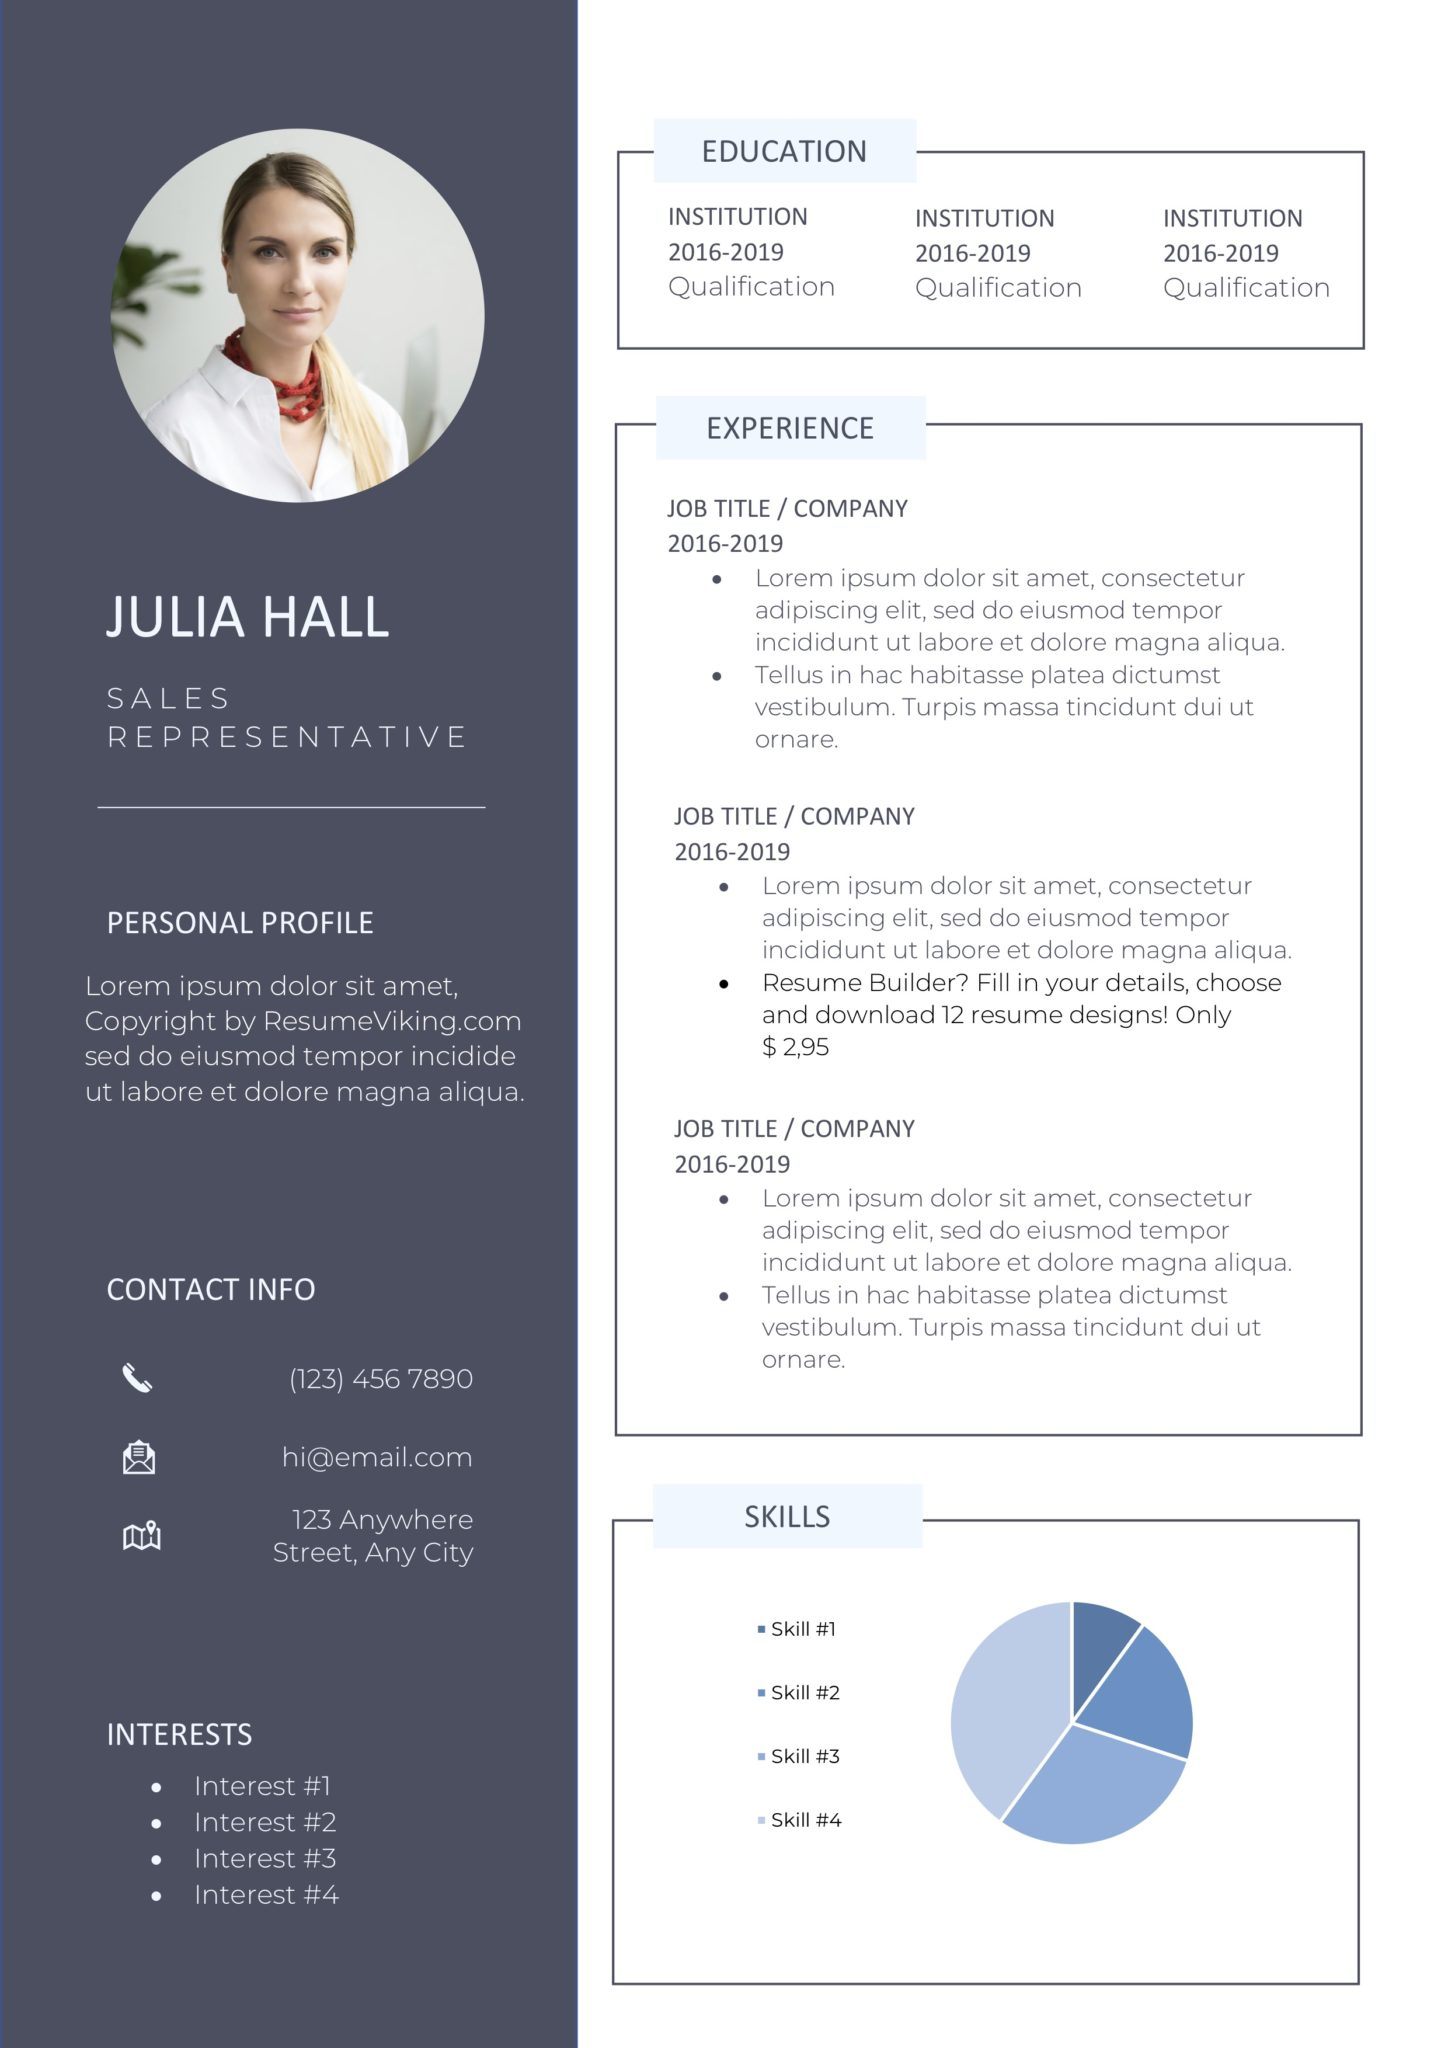 free word resume templates in ms template resumeviking scaled pca examples with linkedin Resume Free Resume Templates 2020 Download